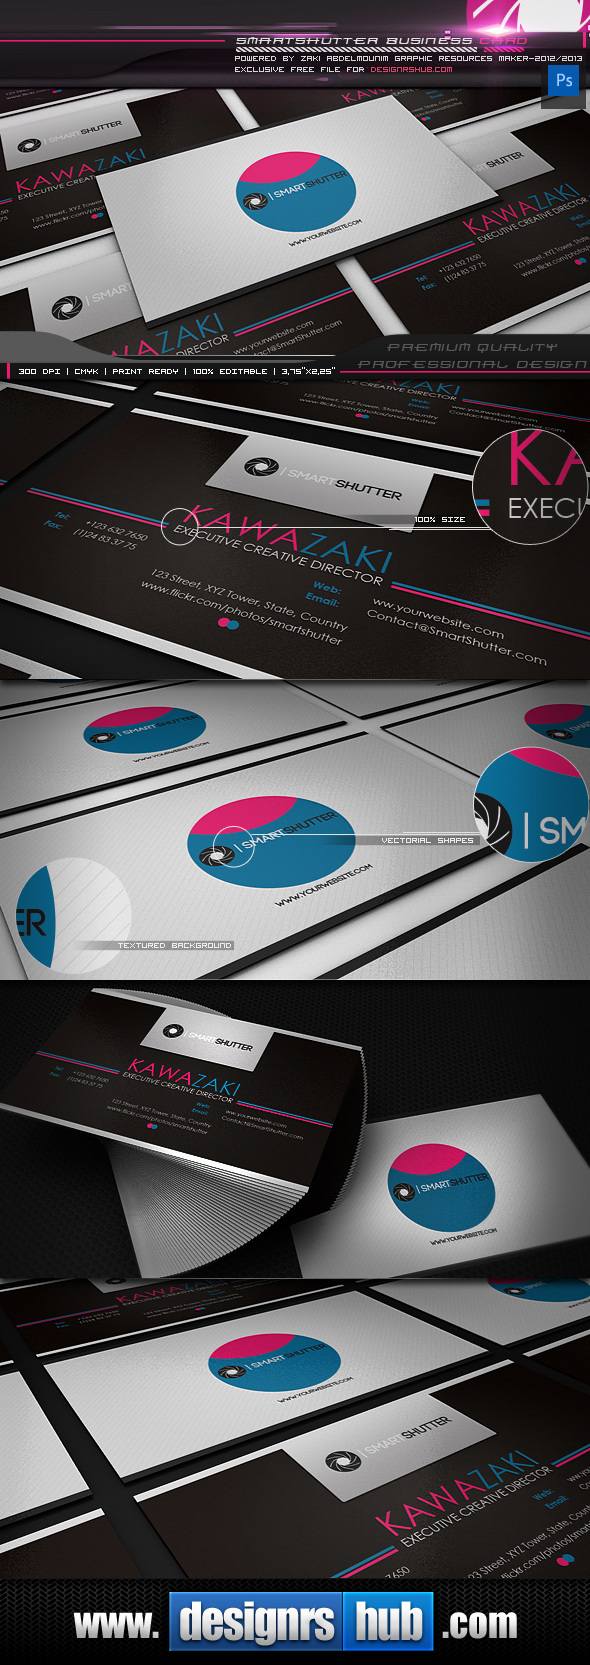 Smart Shutter - Free Photography Business Card Template